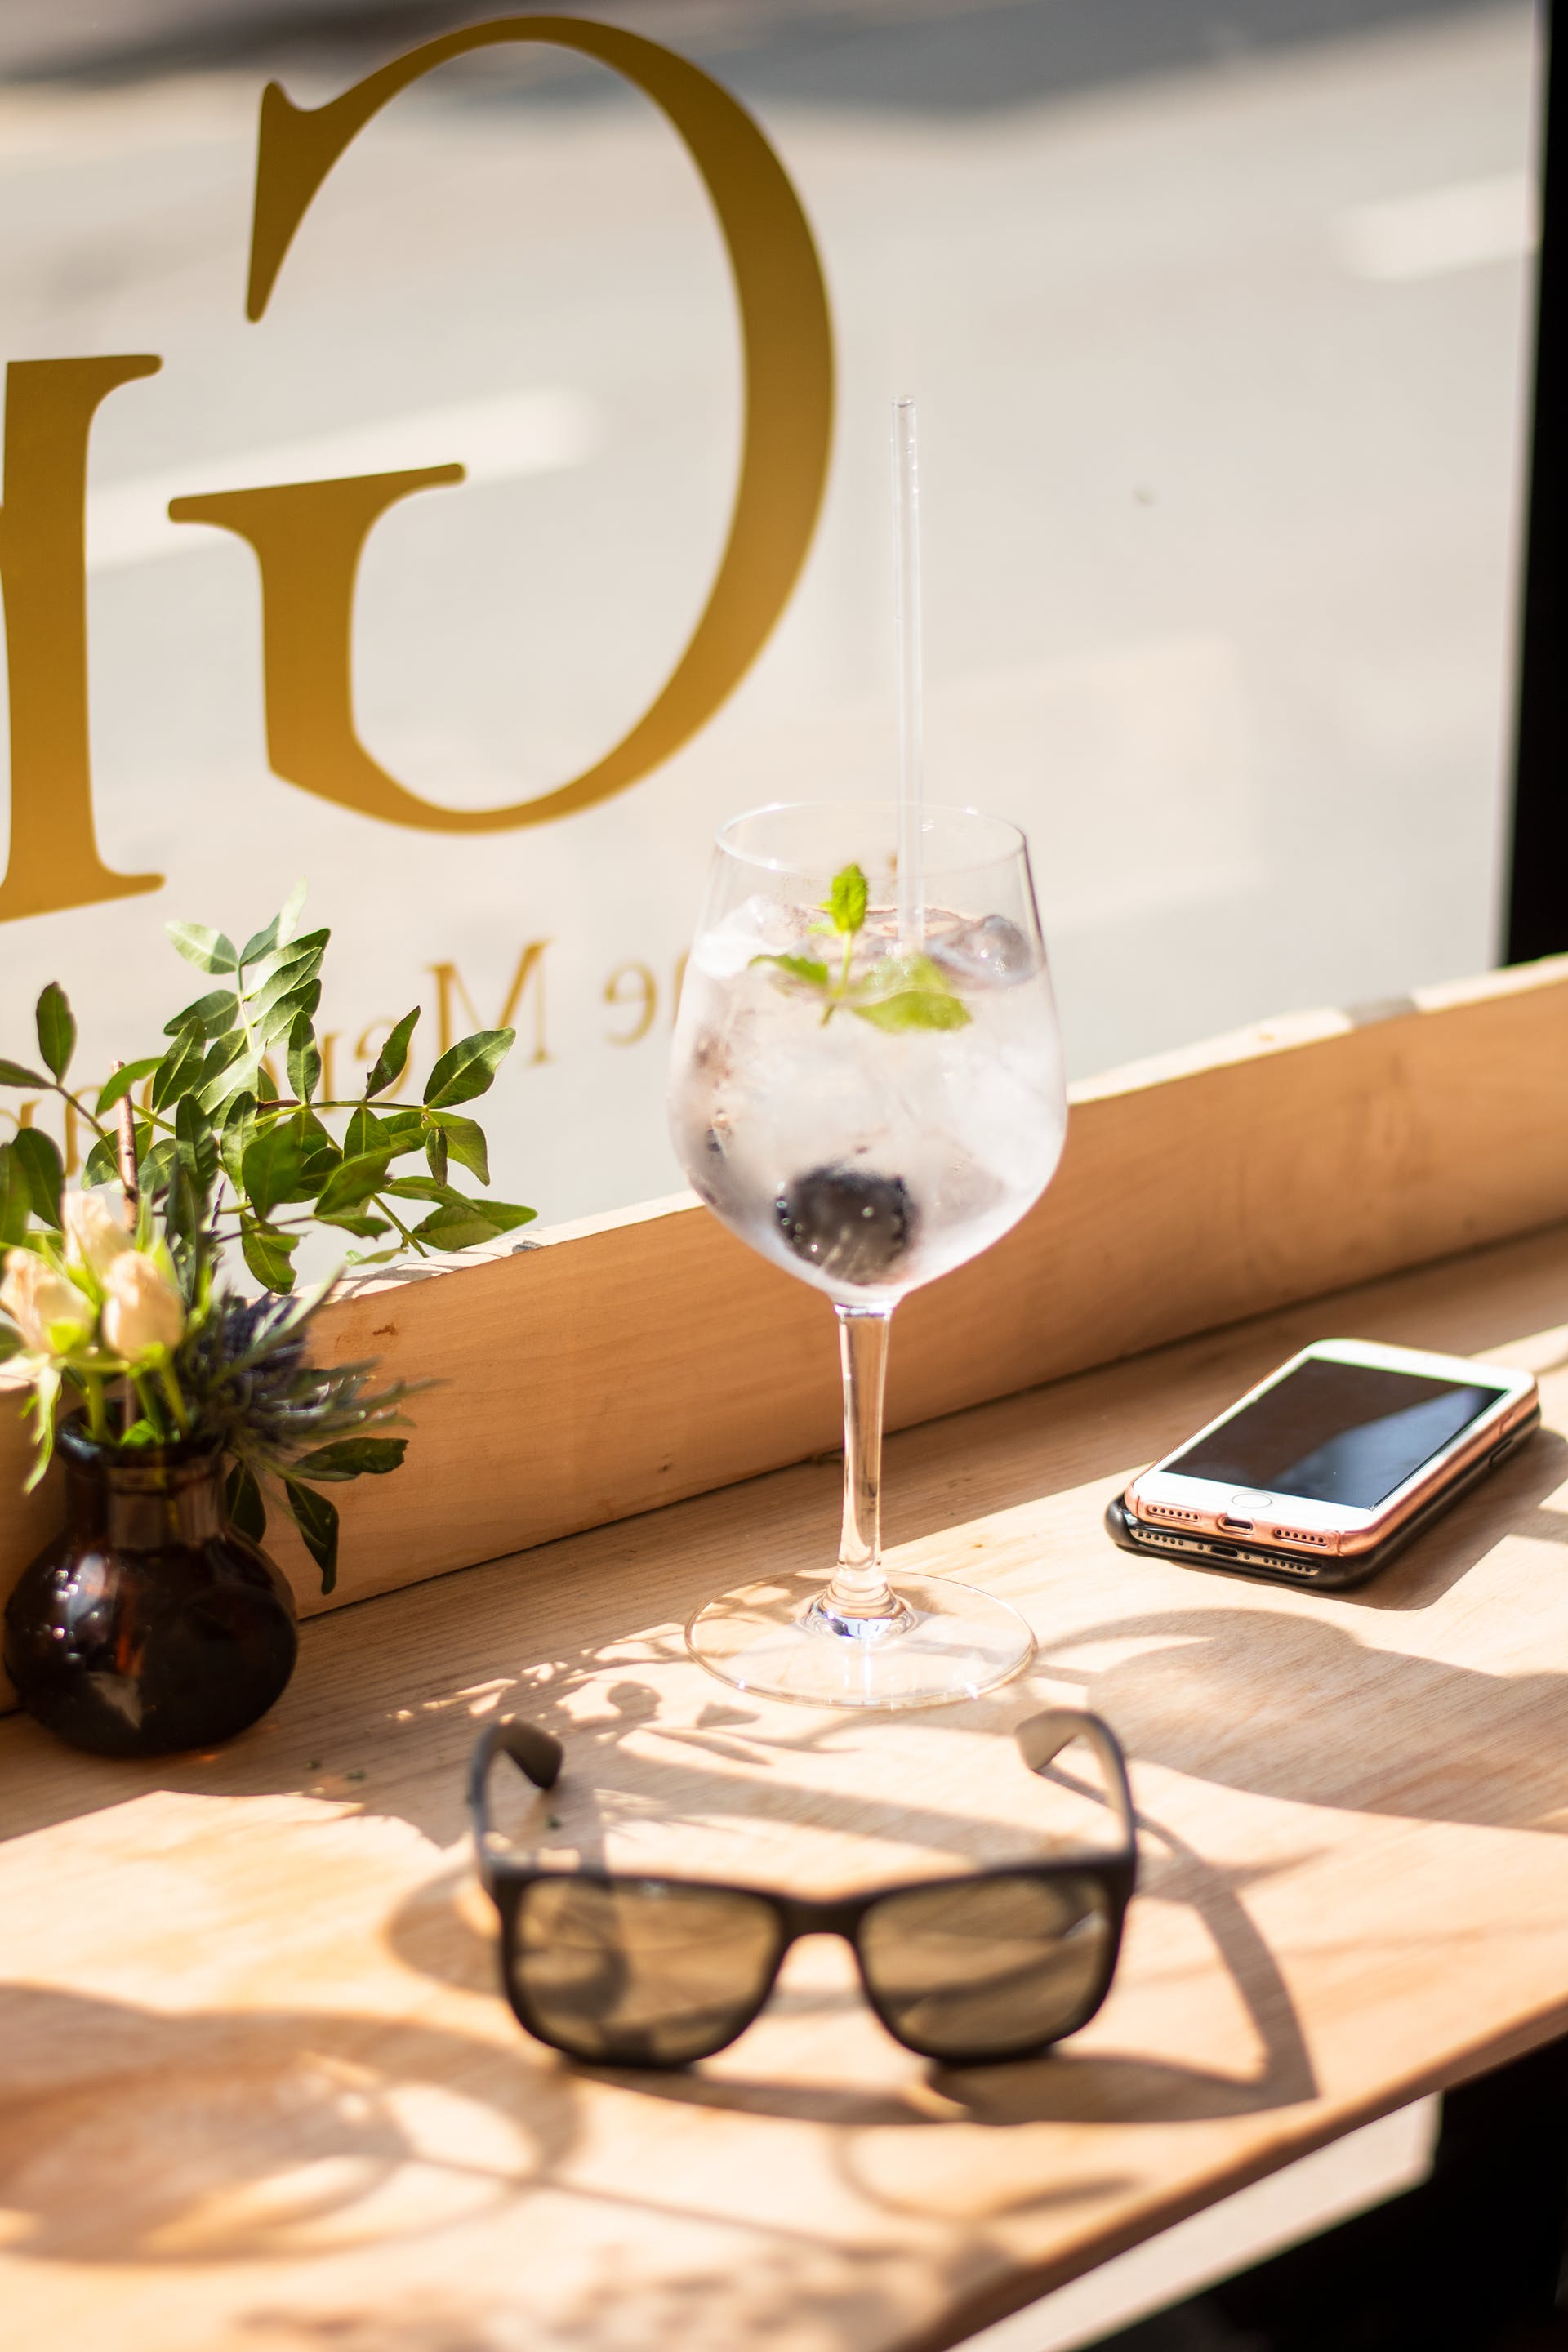 Free stock photo of day, flower, gin, glass